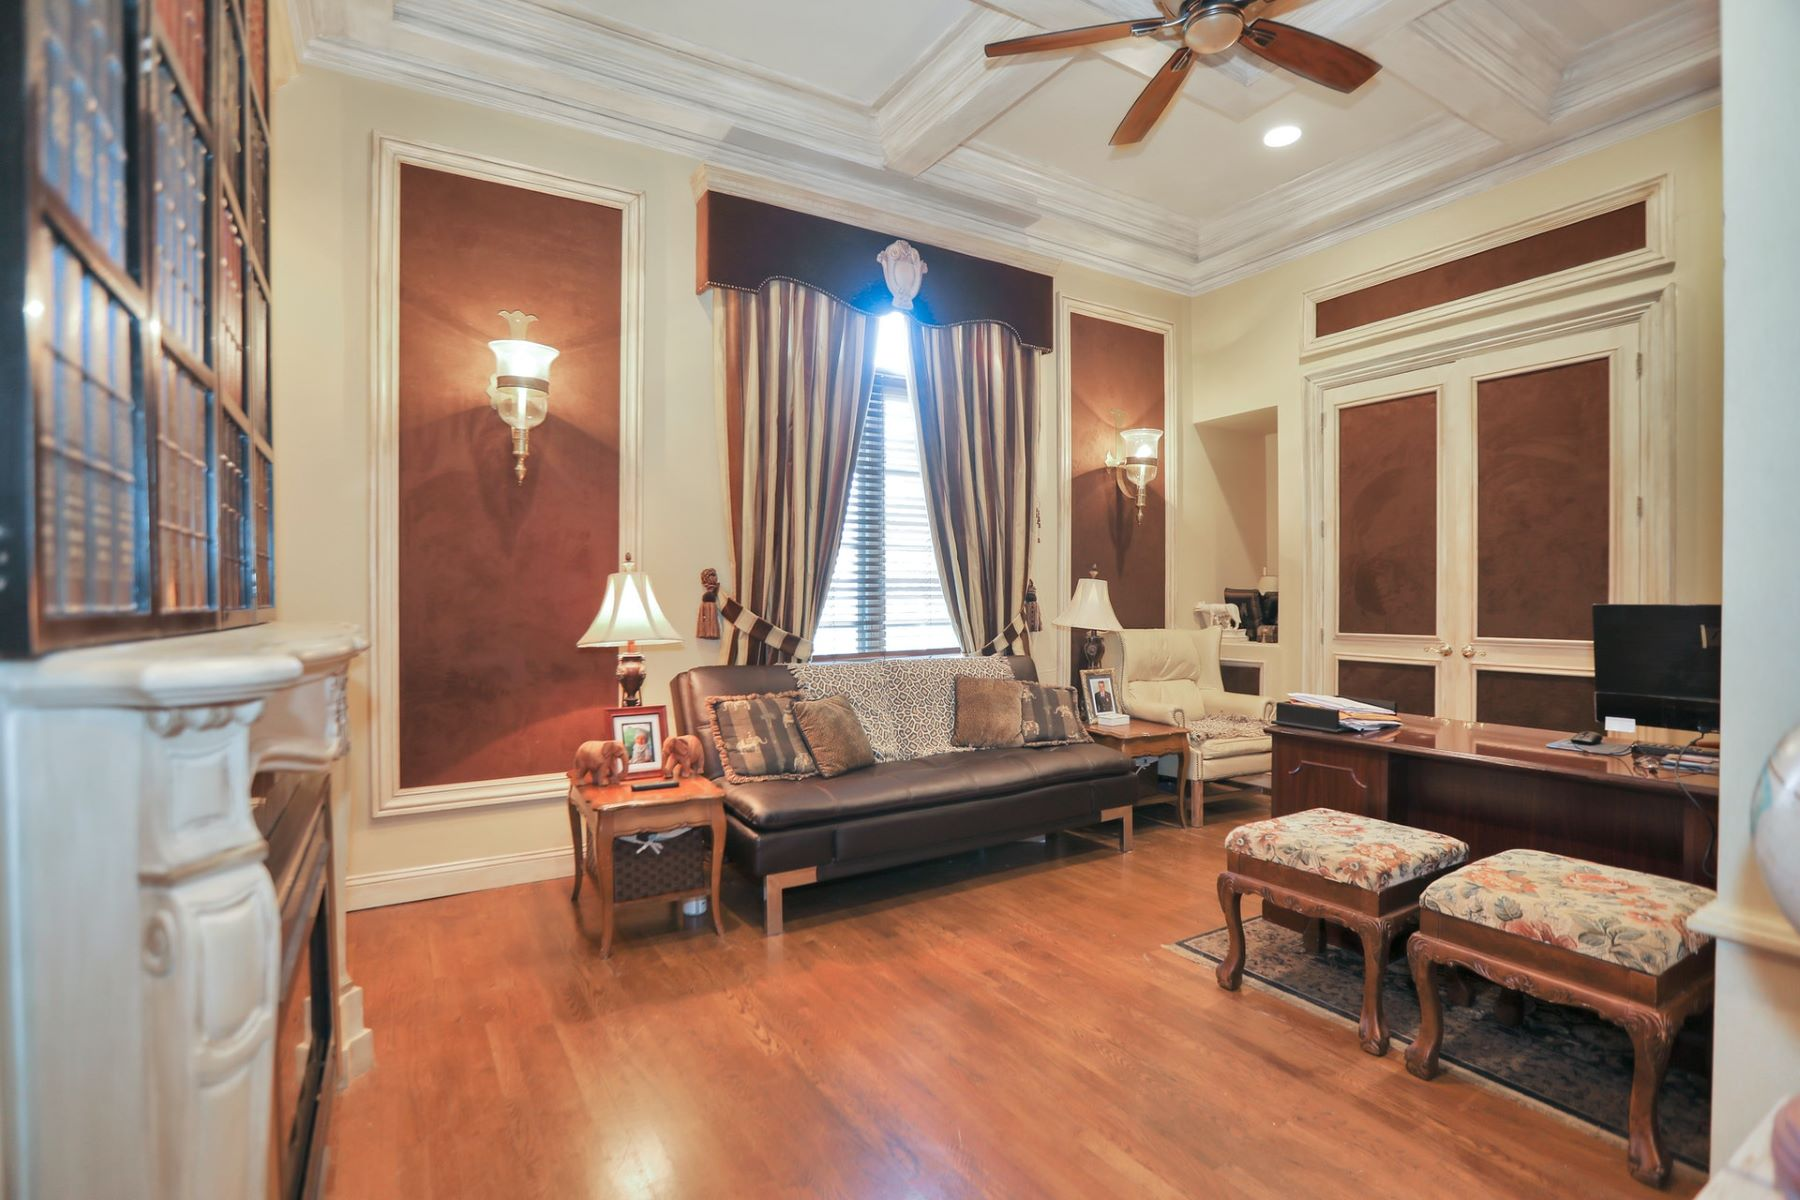 Additional photo for property listing at 28 Buckingham Drive, 阿尔派恩, 新泽西州 07620 美国